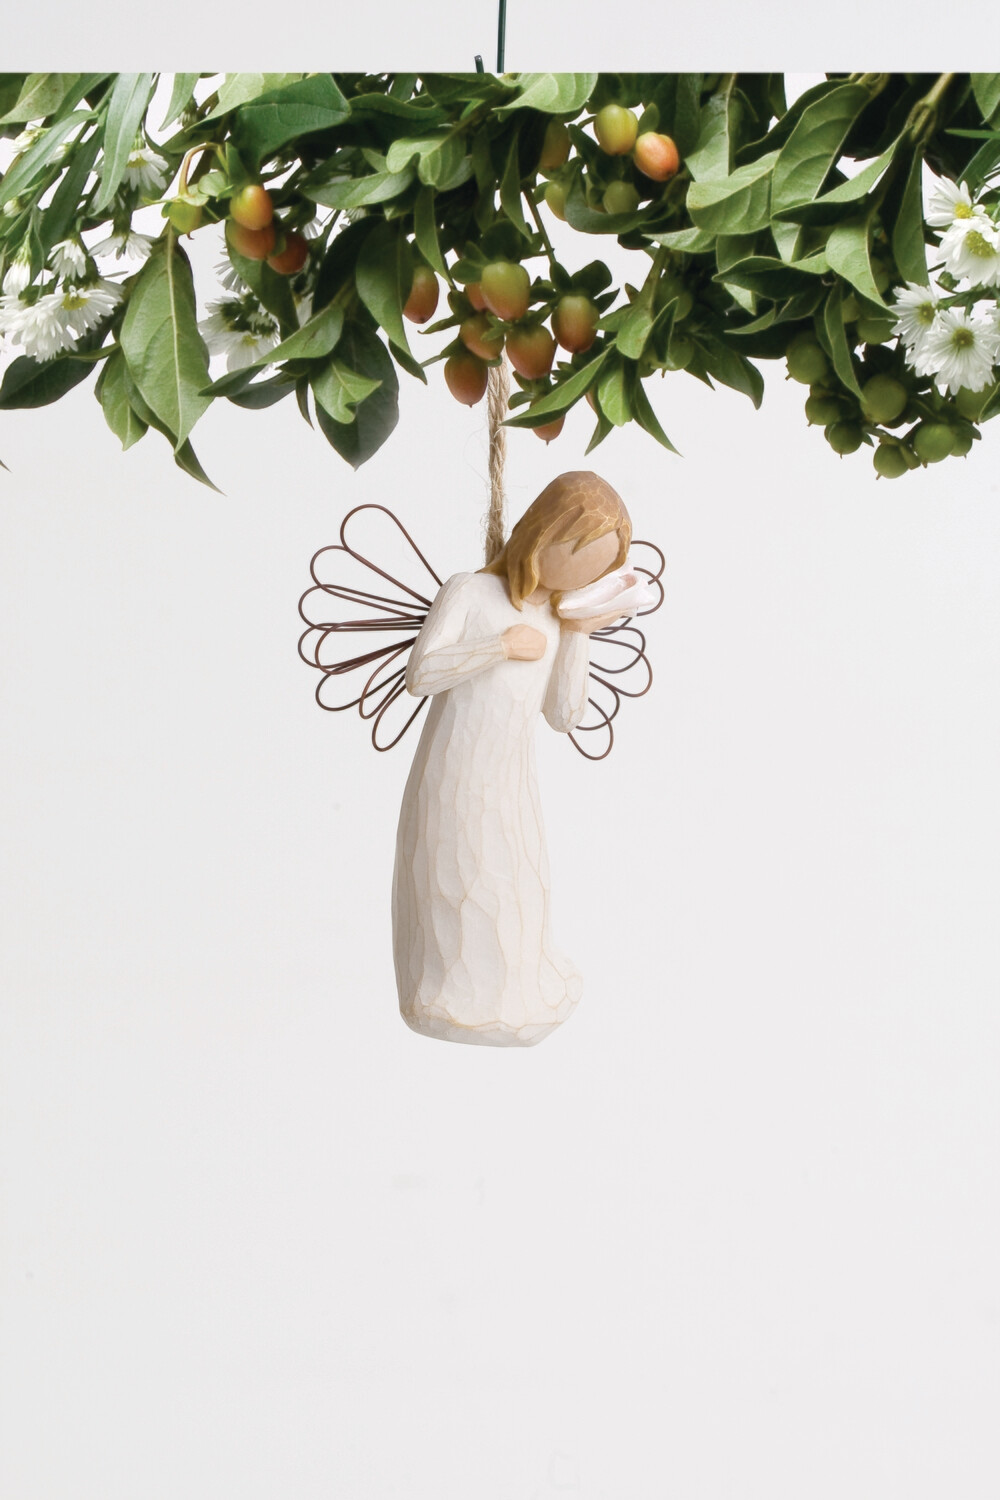 Thinking of You Ornament